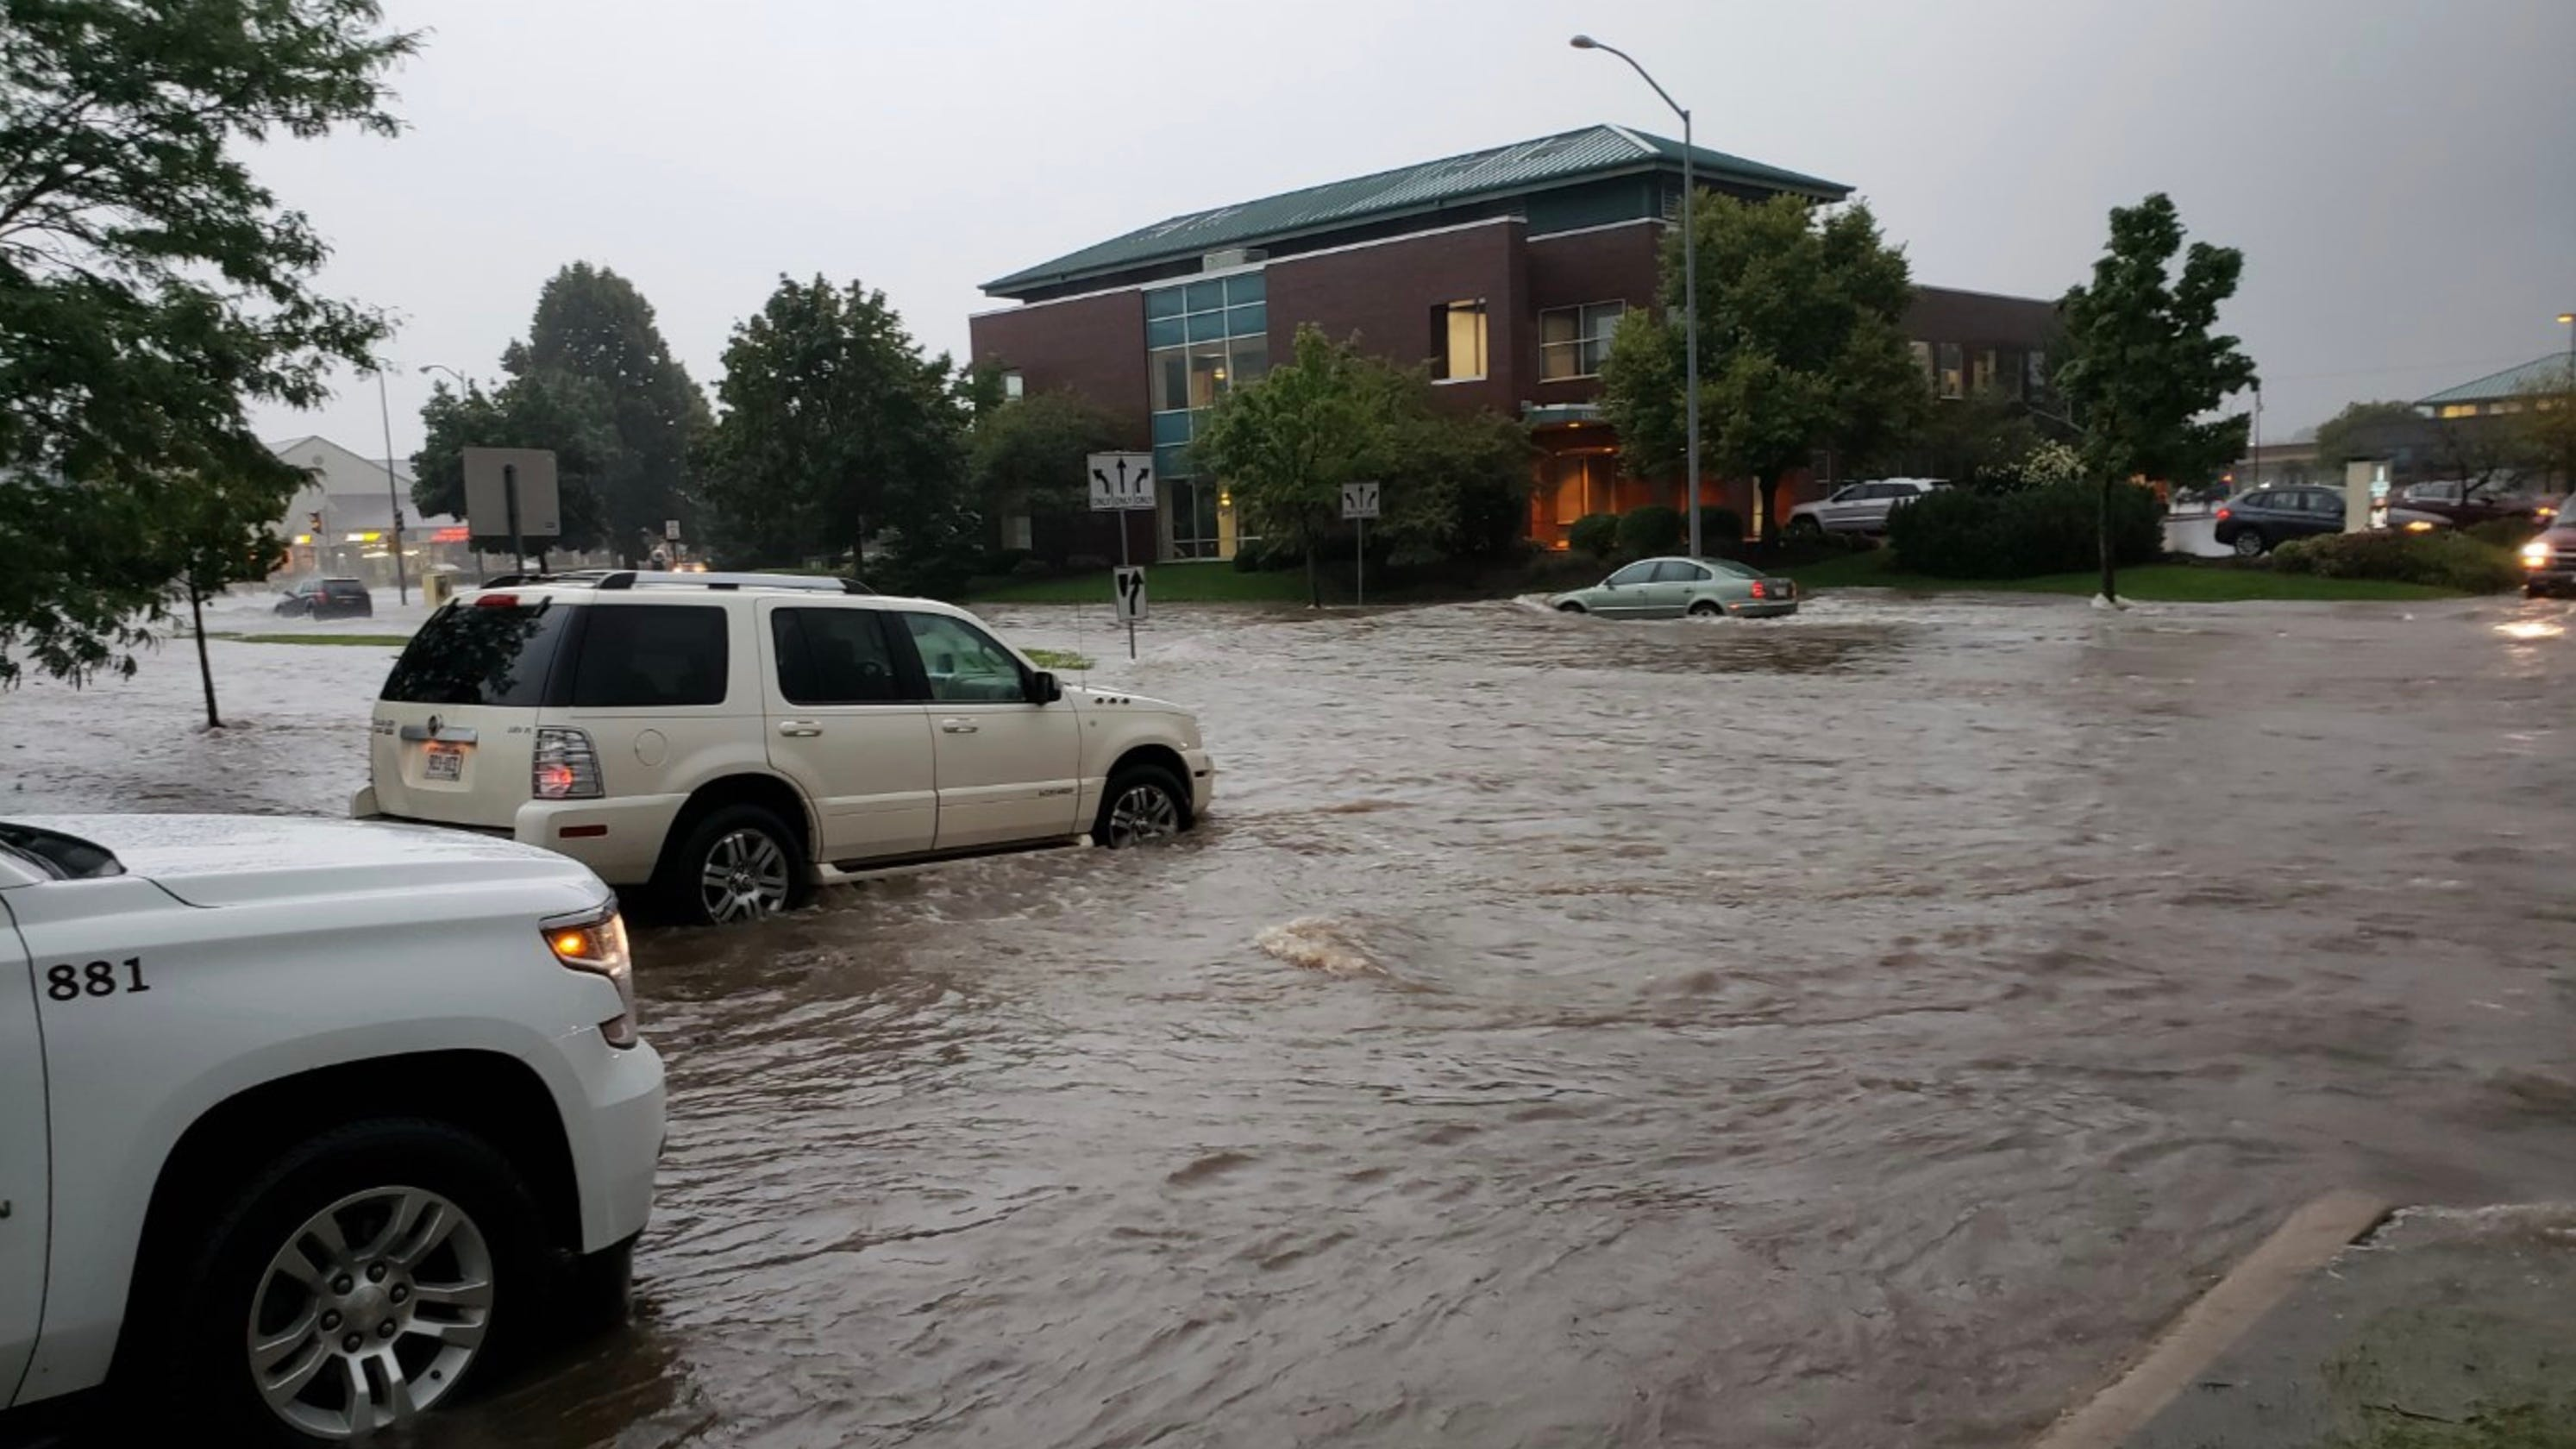 Madison braces for flooding, news and photos shared on social media